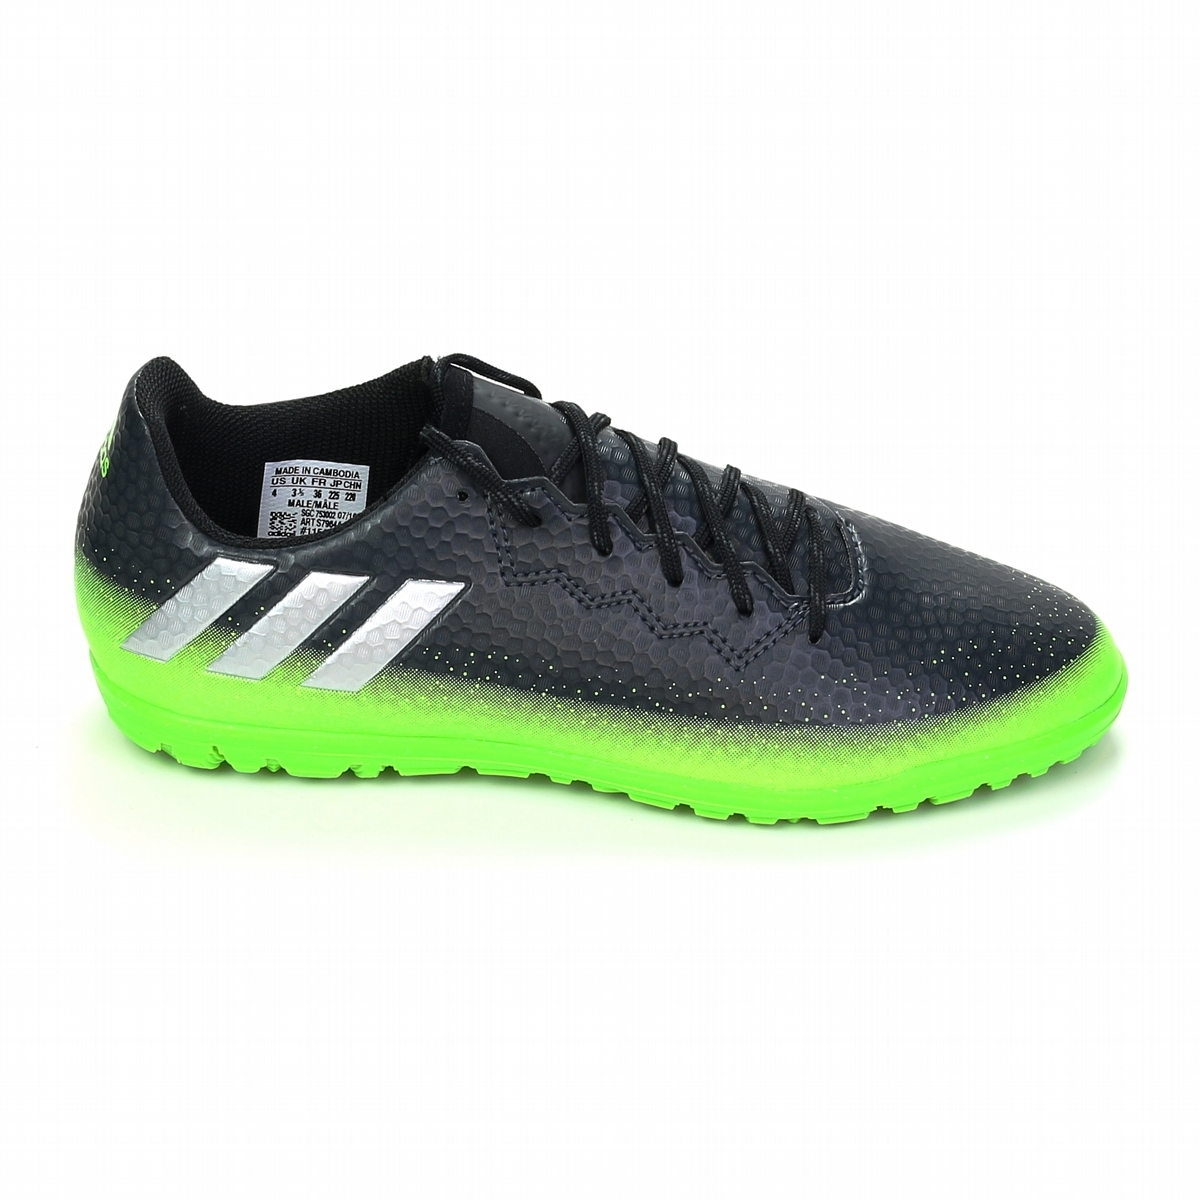 56ec3acd0 Adidas Youth Messi 16.3 Turf Soccer Shoes (Dark Grey/Silver Metallic ...